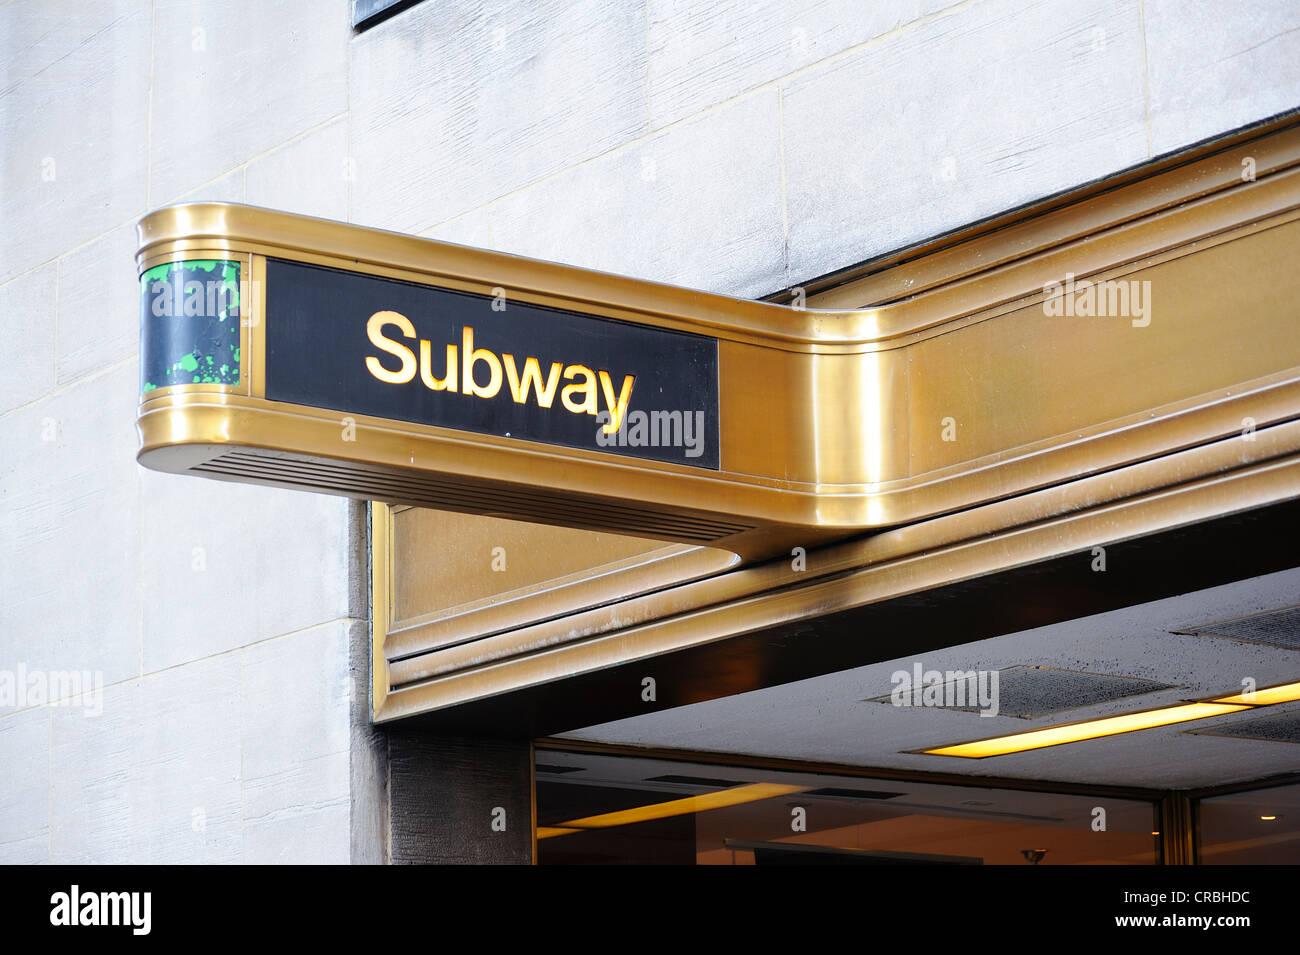 Subway sign, Manhattan, New York, USA - Stock Image